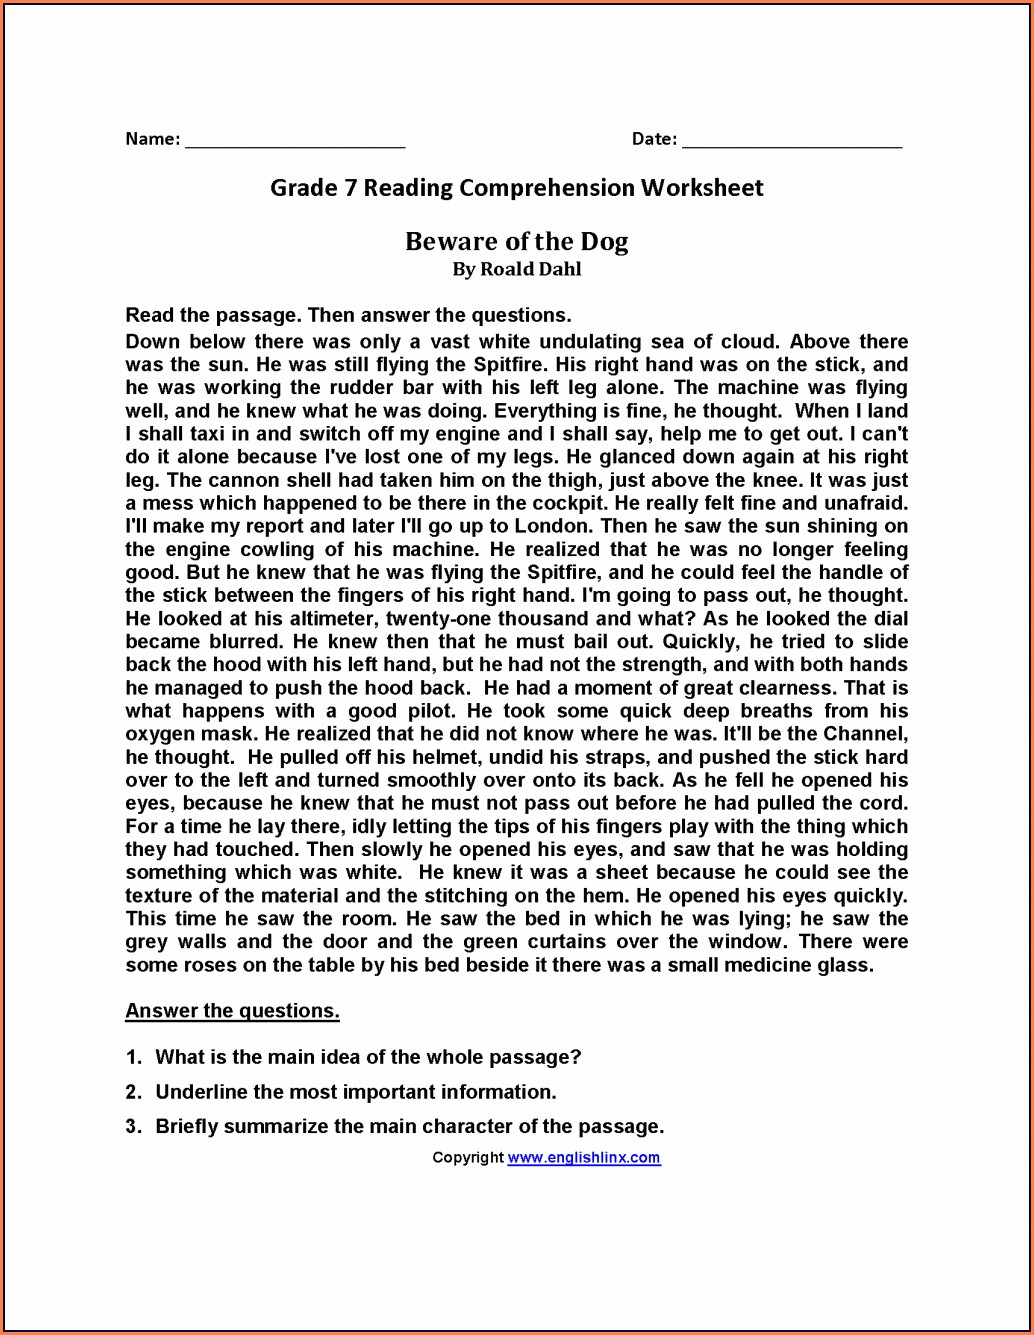 Comprehension Worksheet With Answers